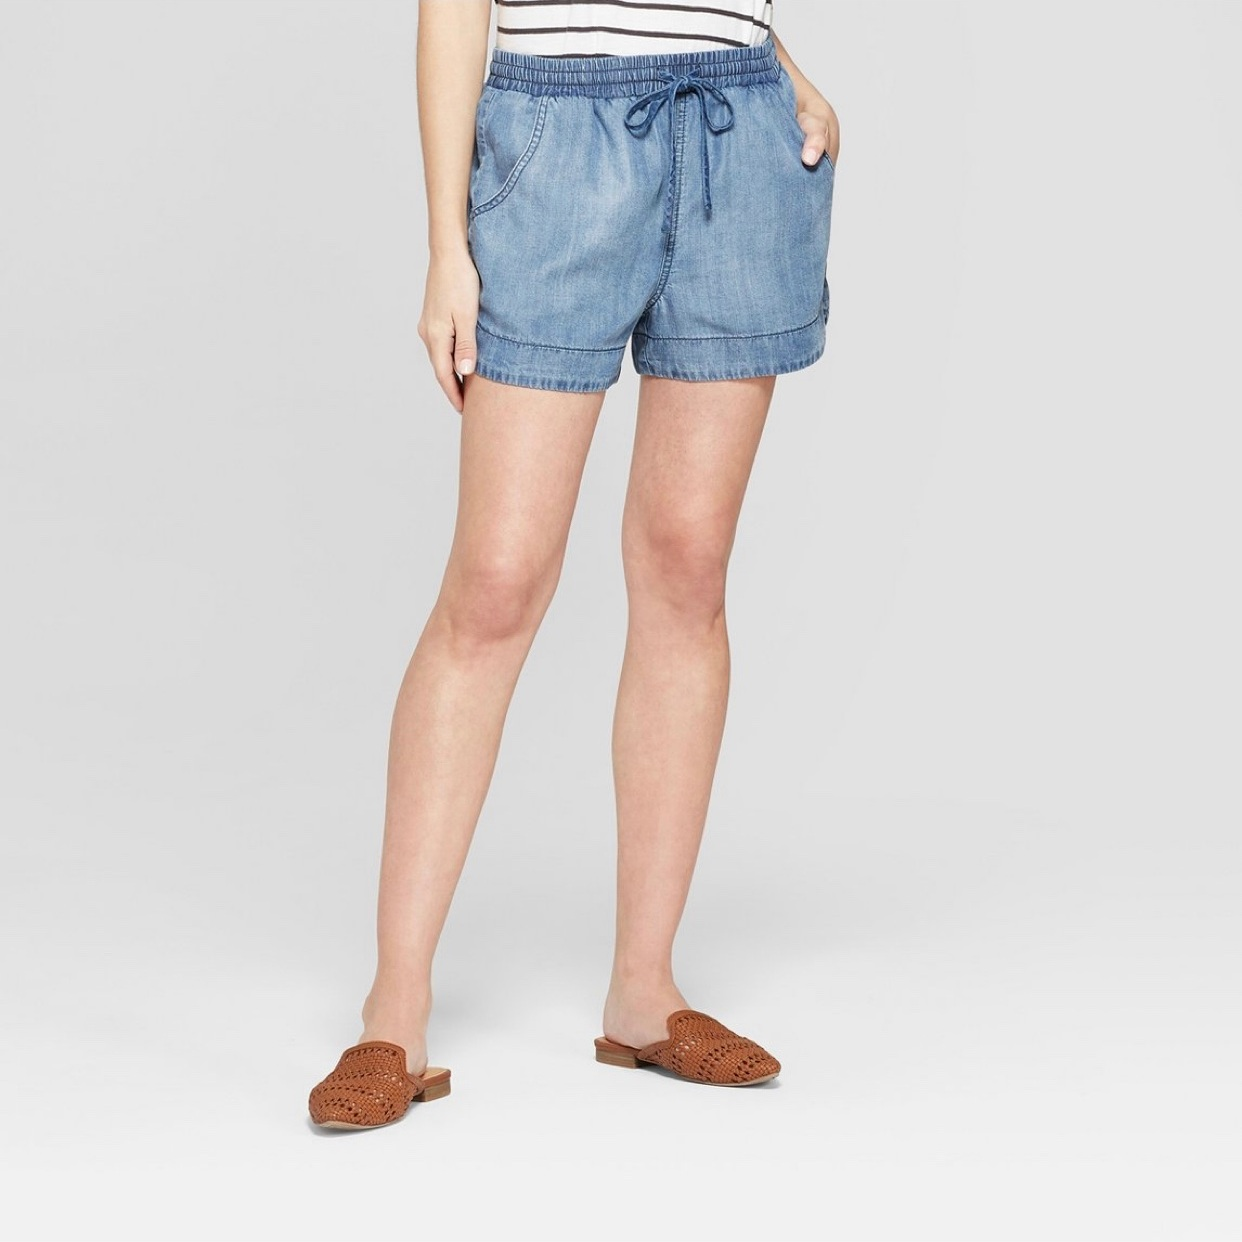 - I'm loving this lightweight shorts this summer!Find them here.